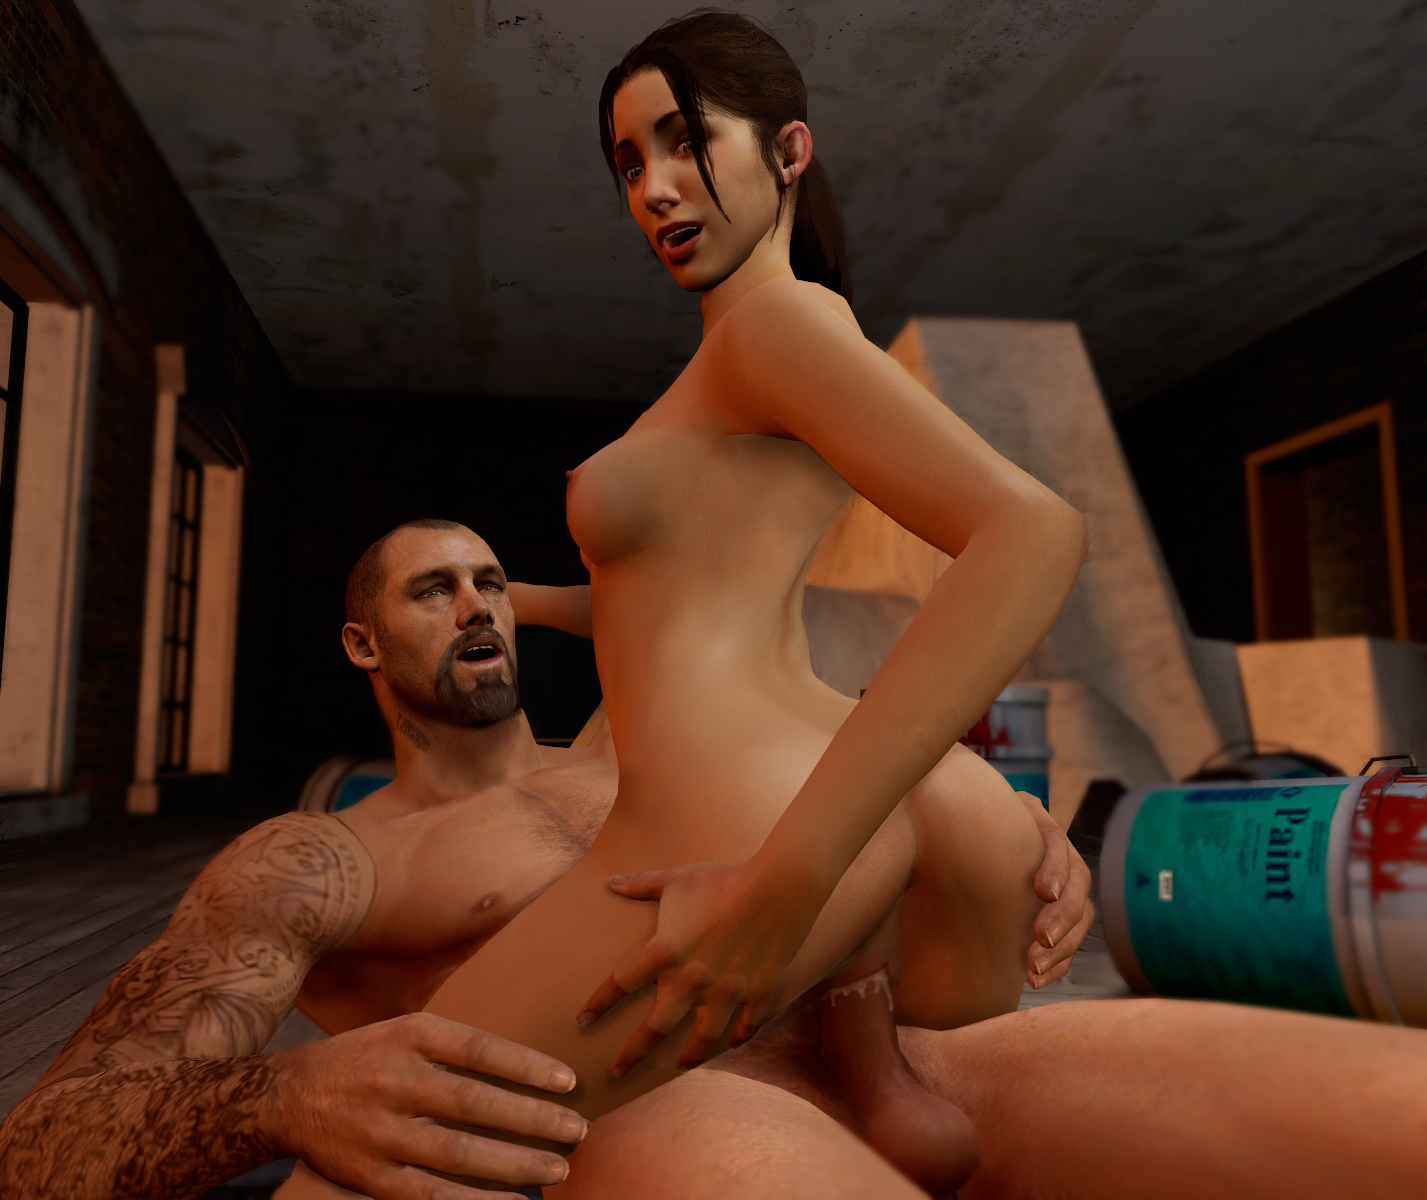 3d l4d zoey fuck monster videonxnn pron galleries